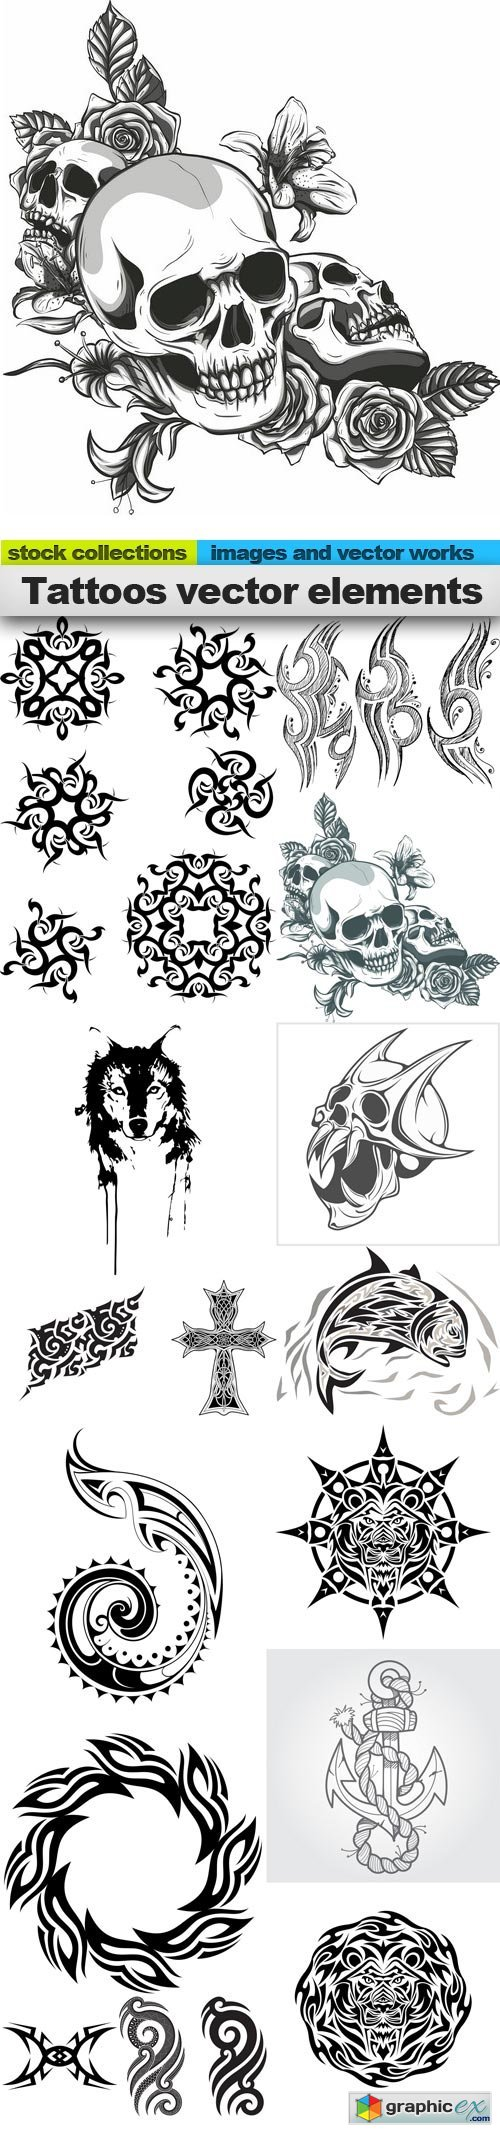 Tattoos vector elements, 15 x EPS